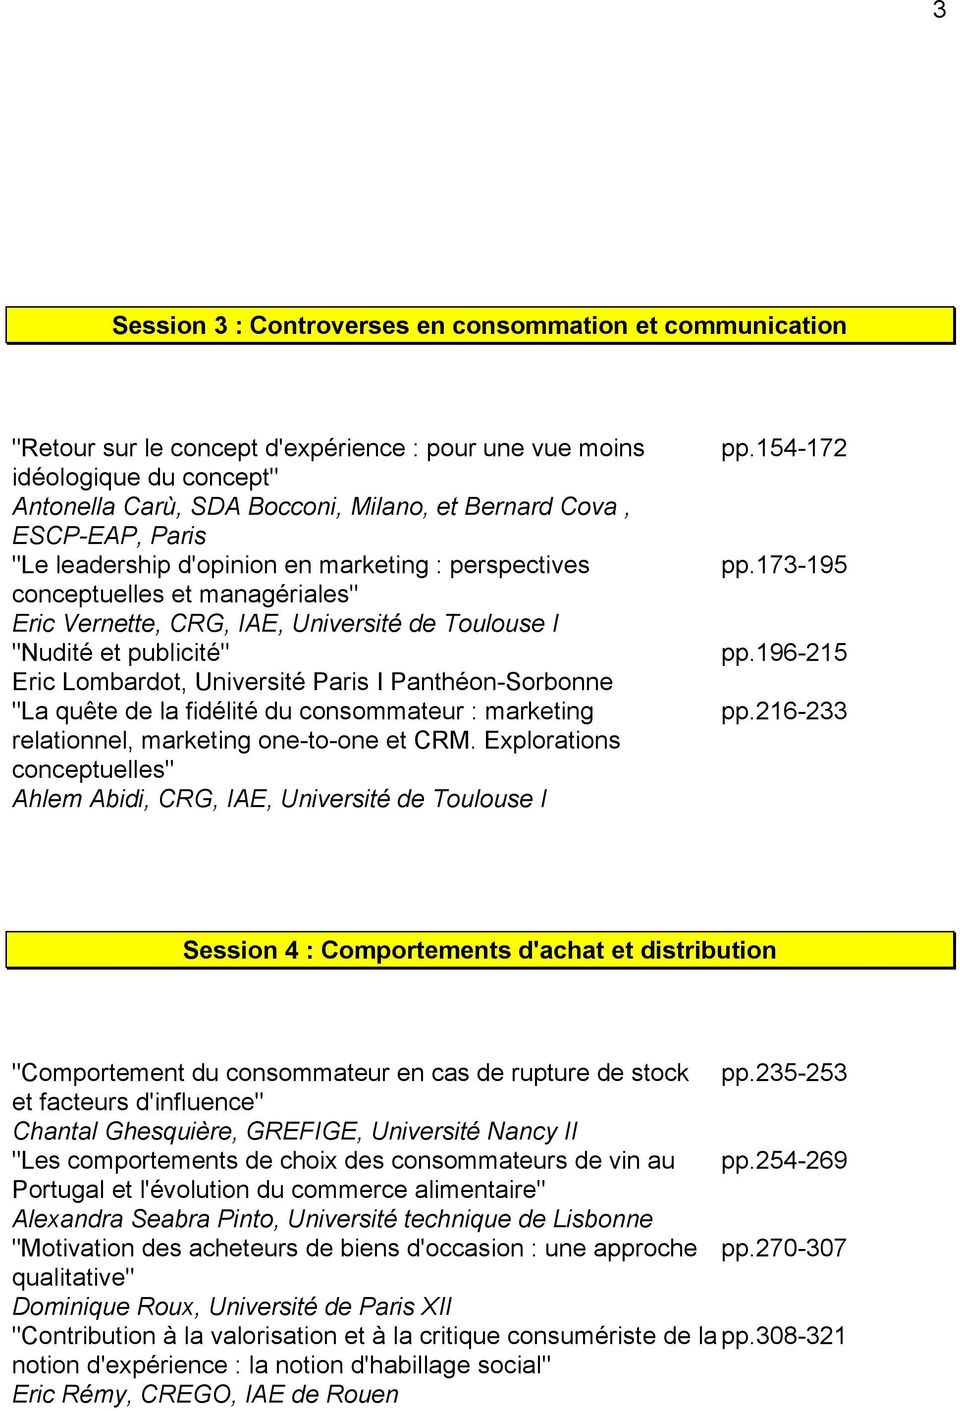 "Paris I Panthéon-Sorbonne ""La quête de la fidélité du consommateur : marketing relationnel, marketing one-to-one et CRM. Explorations conceptuelles"" Ahlem Abidi, CRG, IAE, Université de Toulouse I pp."